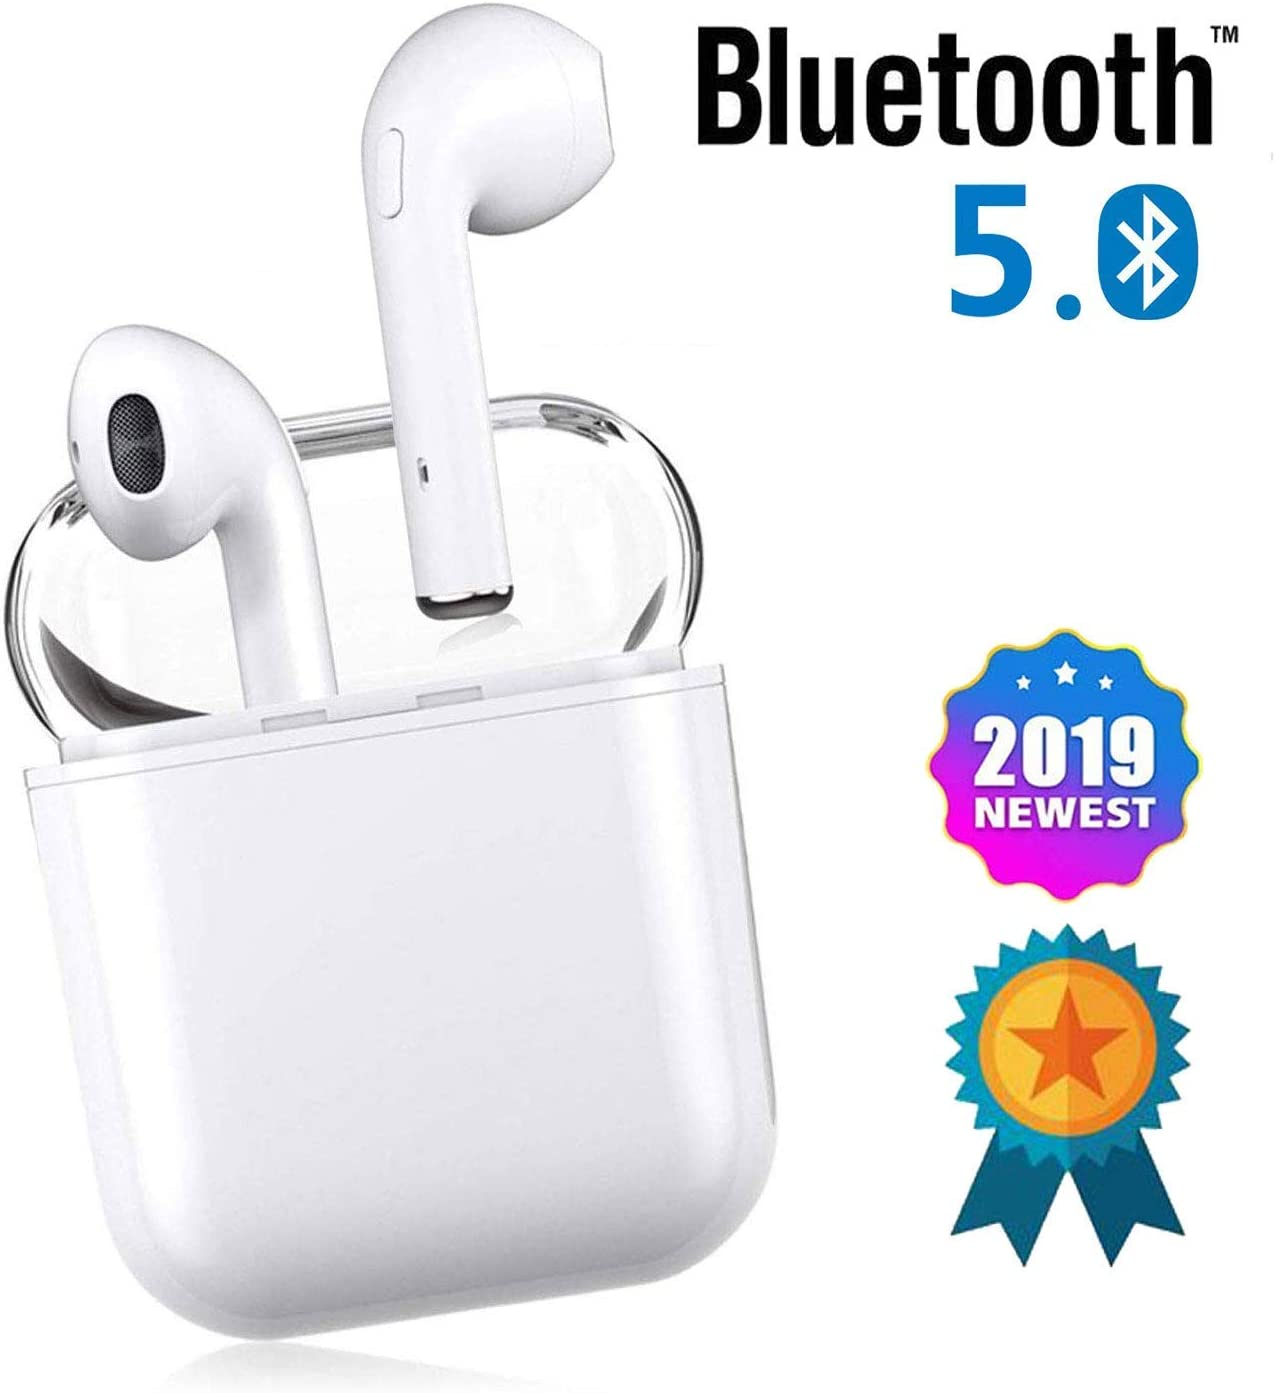 Paww WaveSound 3 Bluetooth 5.0 Wireless Active Noise Cancelling Over Ear Headphones w Mic, Hi-Fi, Deep Bass, aptX Low Latency, ShareMe, Siri, Google Connect for Travel Work TV Computer Phone